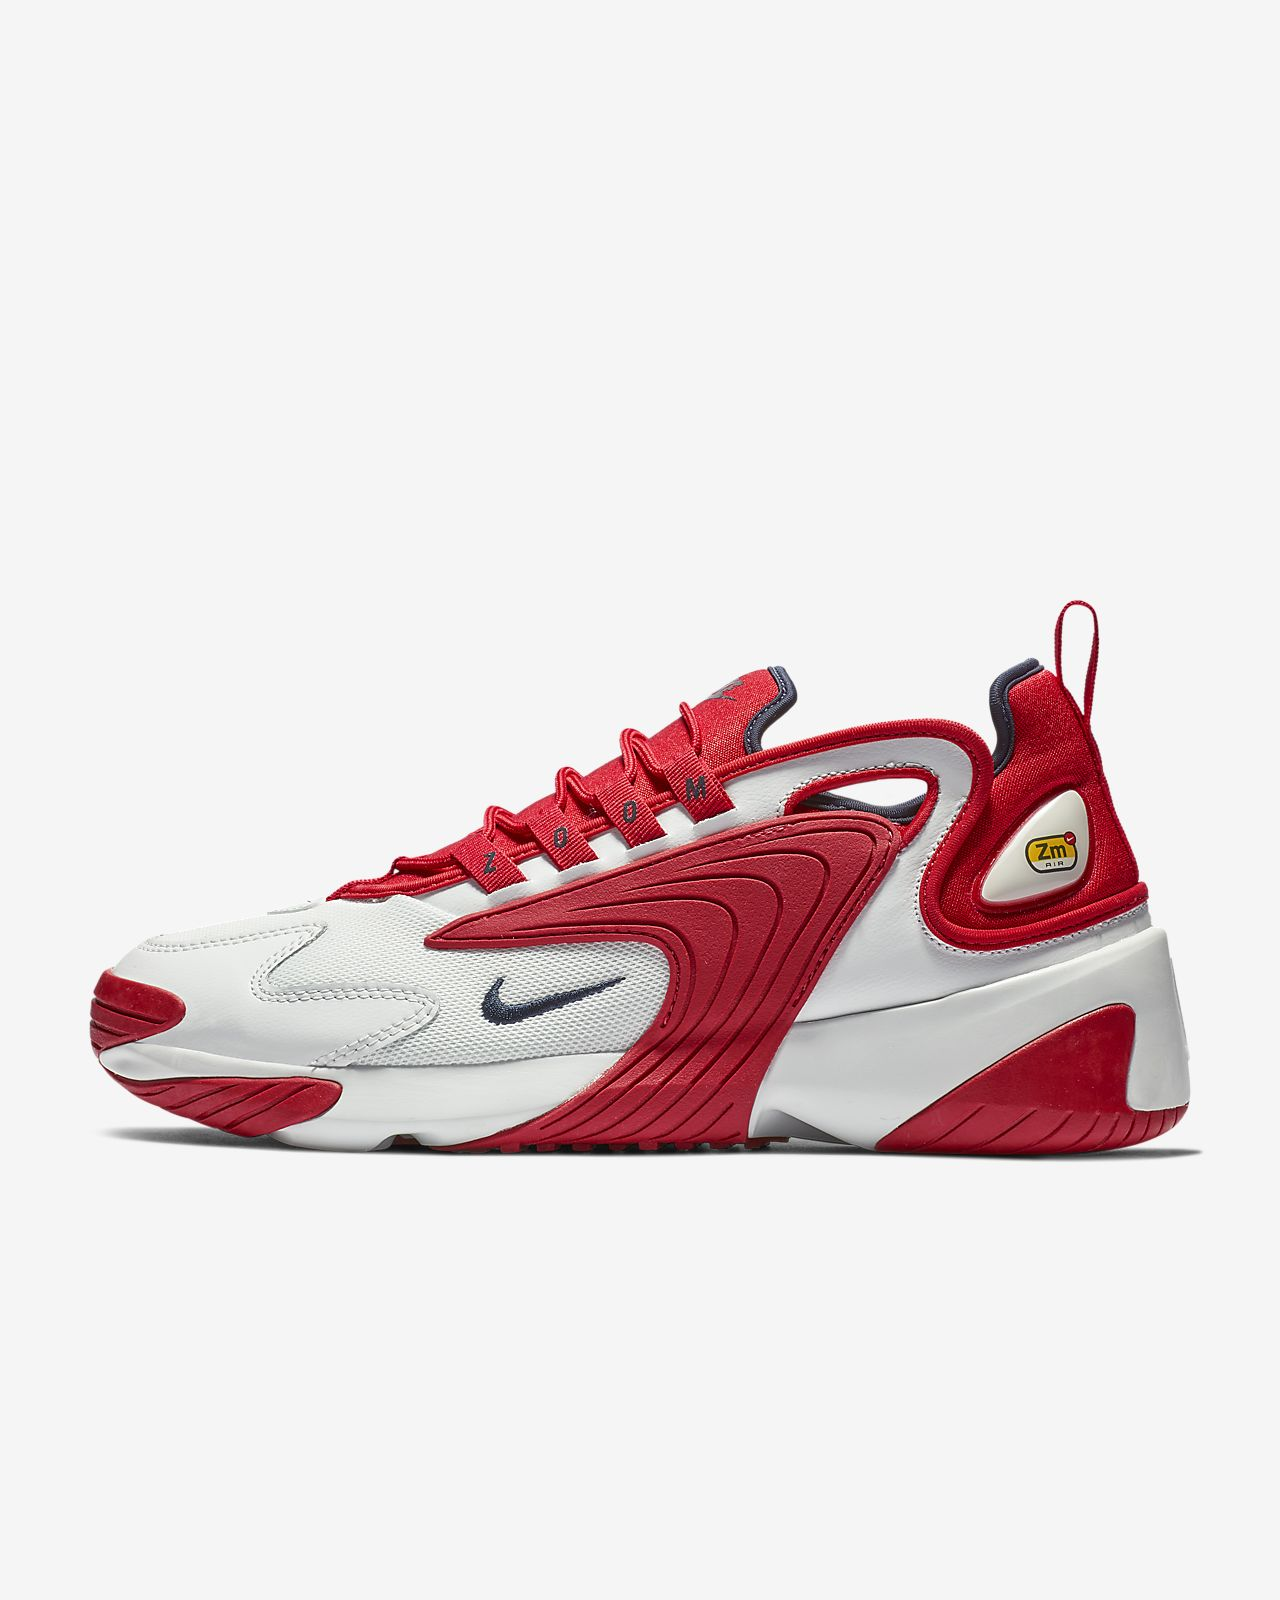 cheaper 4298b ad192 ... Chaussure Nike Zoom 2K pour Homme